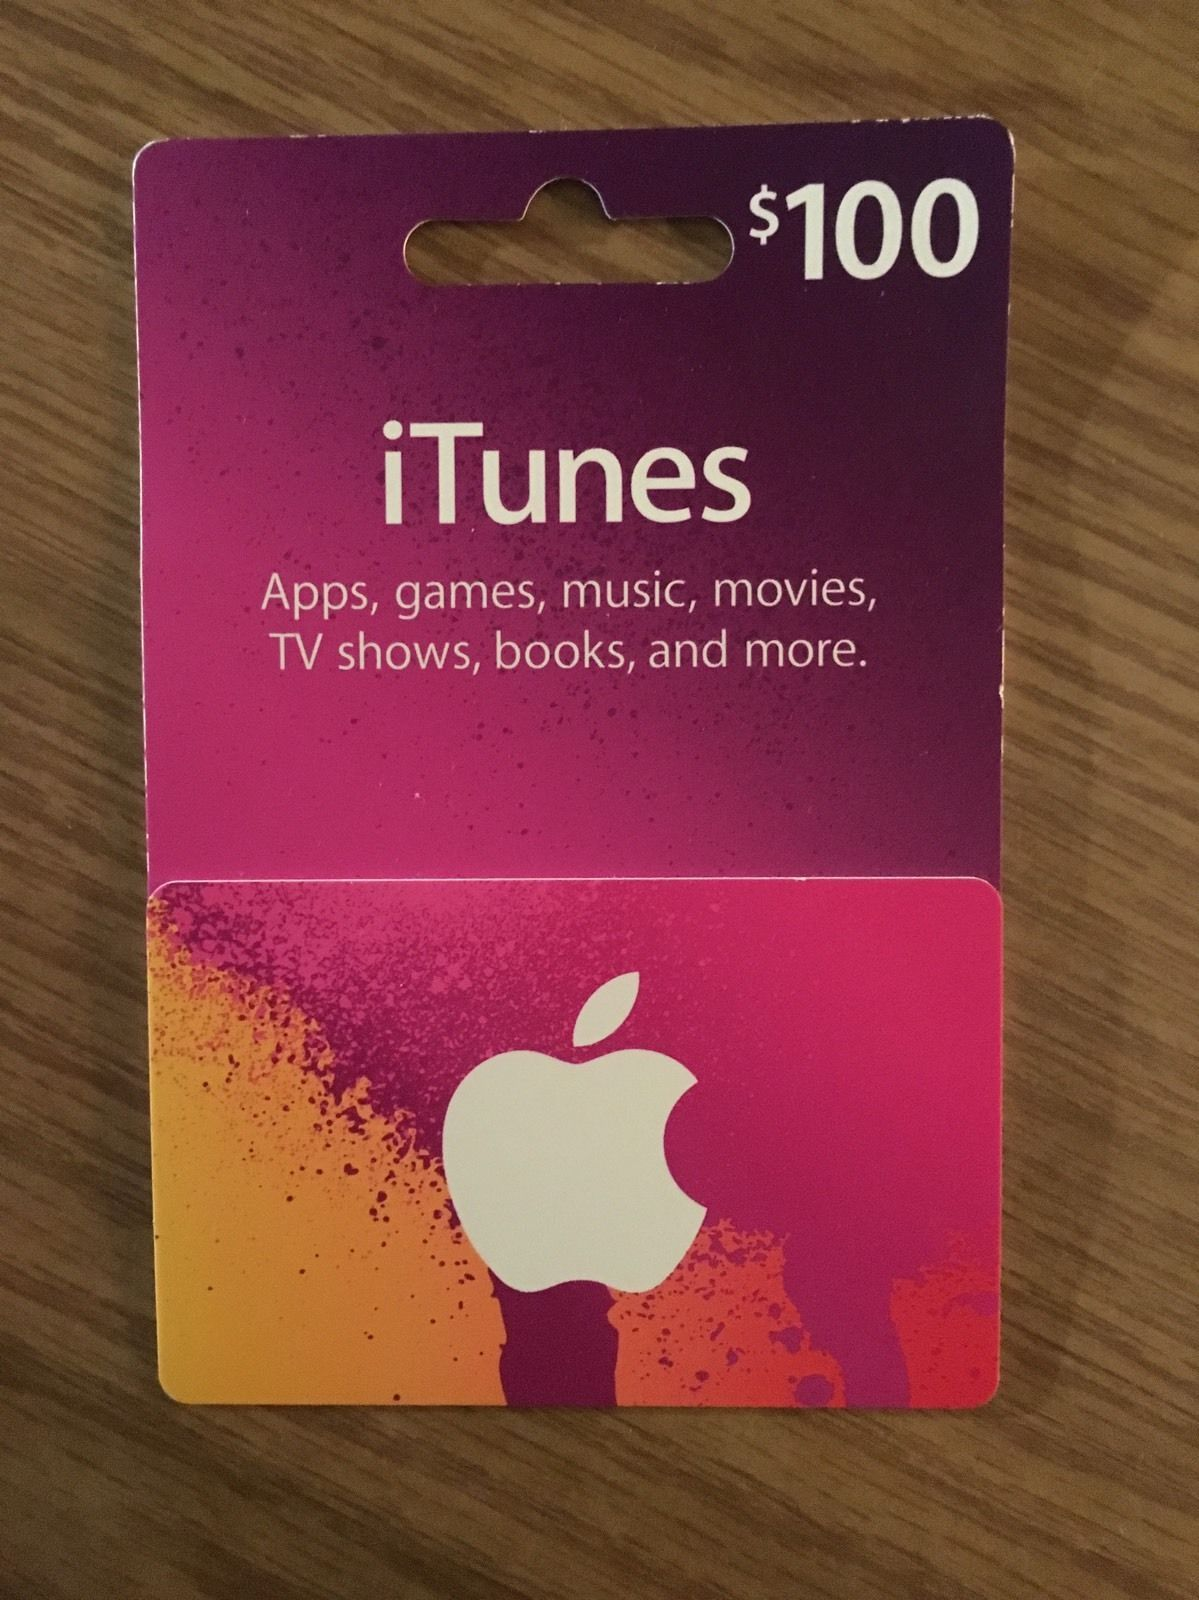 Itunes Gift Card 100 Http Searchpromocodes Club Itunes Gift Card 100 22 Itunes Gift Cards Amazon Gift Cards Gift Card